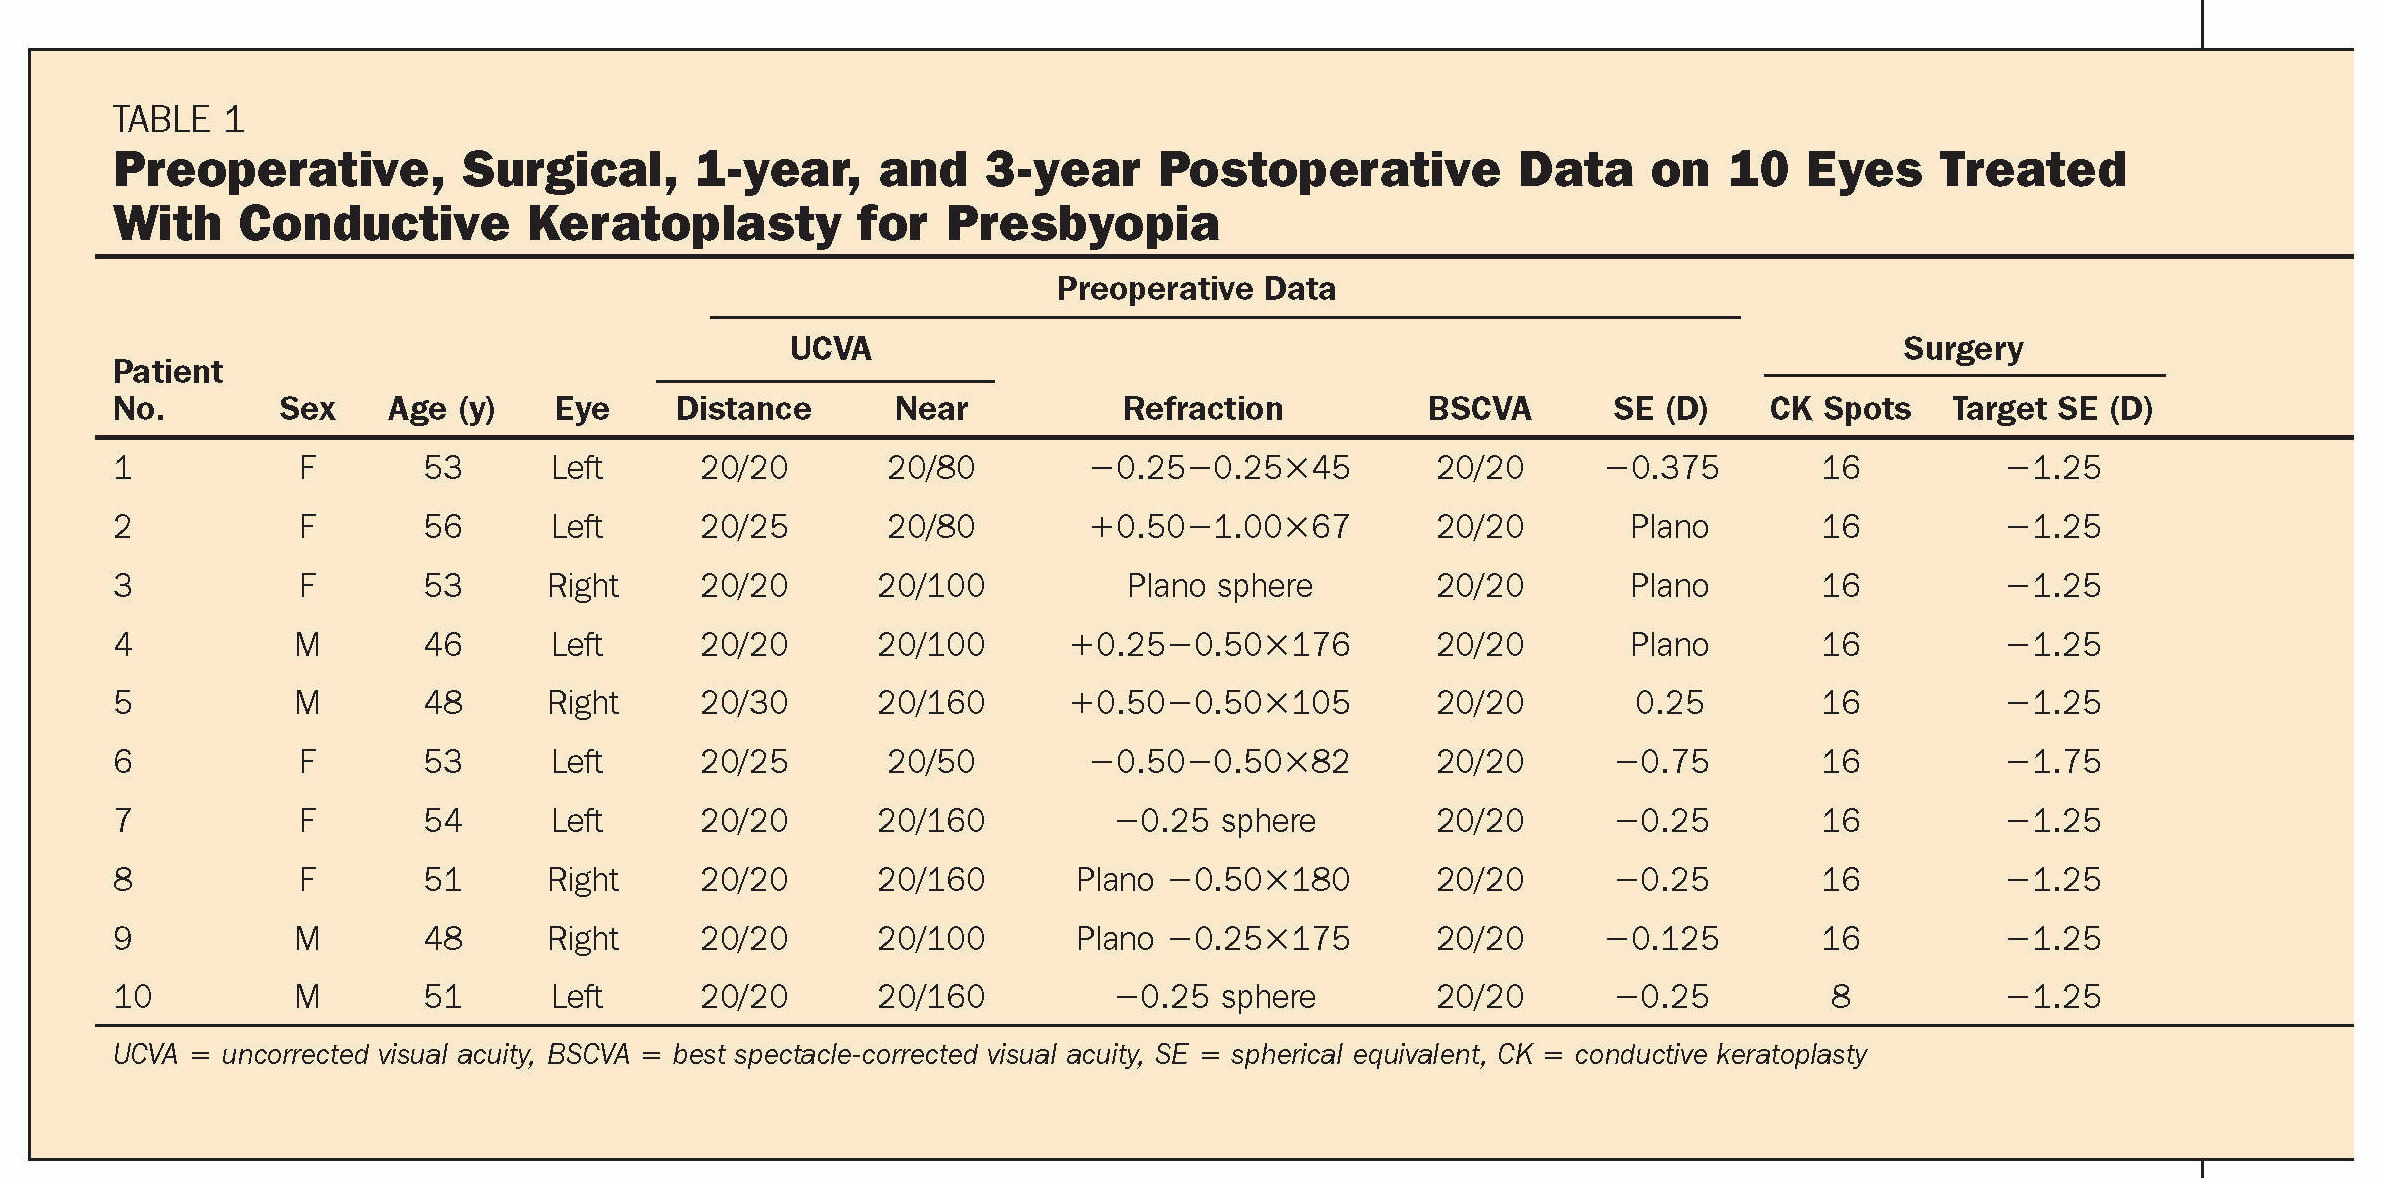 TABLE 1Preoperative, Surgical, 1-year, and 3-year Postoperative Data on 10 Eyes Treated With Conductive Keratoplasty for Presbyopia